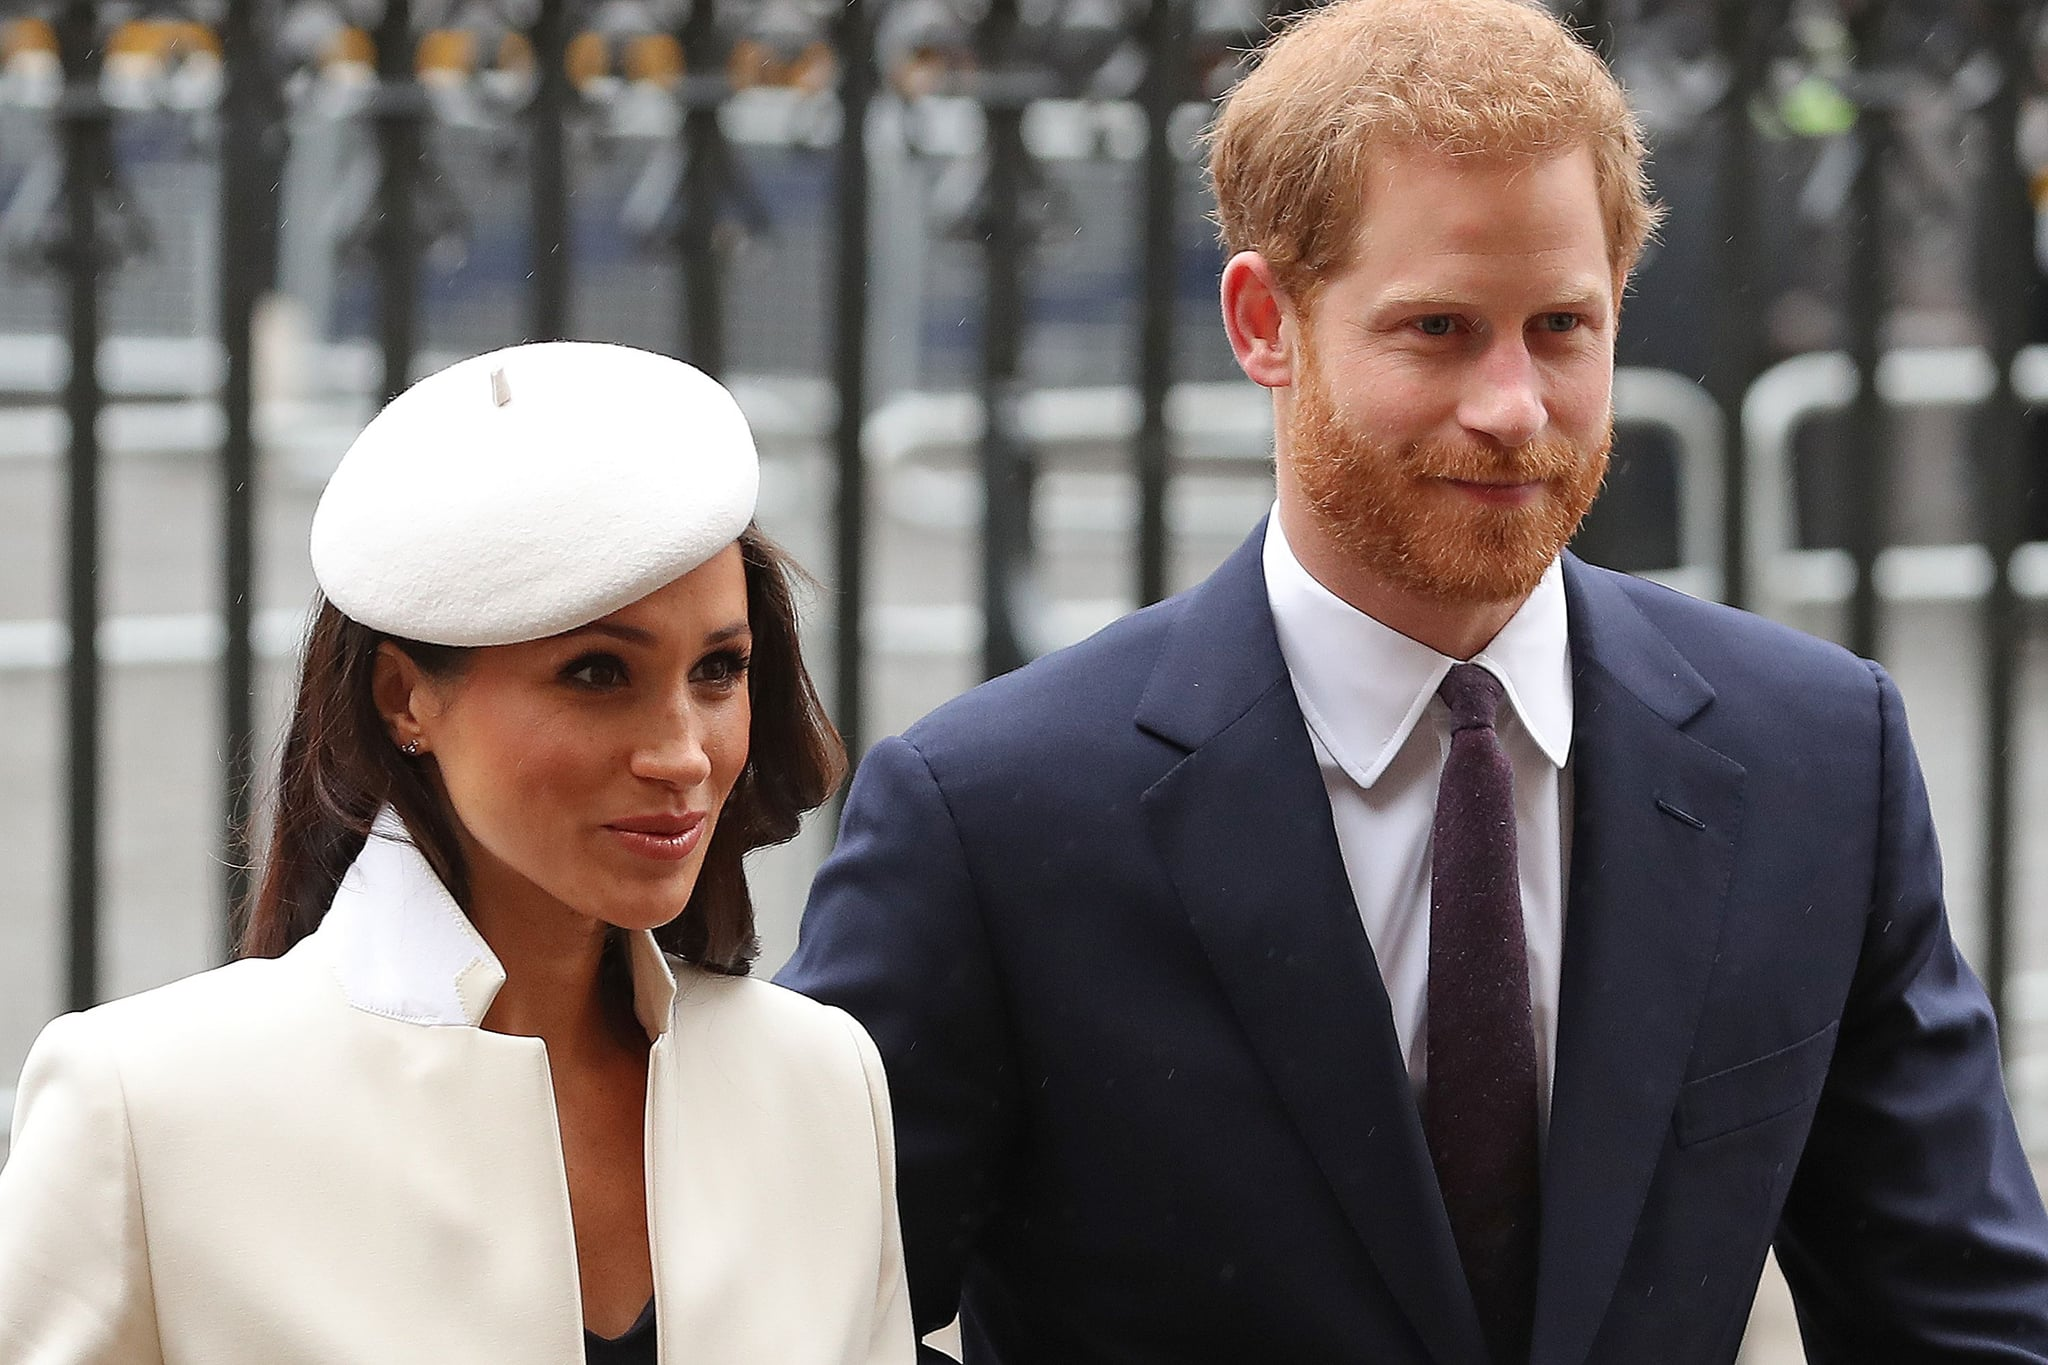 Britain's Prince Harry (R) and his fiancee US actress Meghan Markle attend a Commonwealth Day Service at Westminster Abbey in central London, on March 12, 2018.Britain's Queen Elizabeth II has been the Head of the Commonwealth throughout her reign. Organised by the Royal Commonwealth Society, the Service is the largest annual inter-faith gathering in the United Kingdom. / AFP PHOTO / Daniel LEAL-OLIVAS        (Photo credit should read DANIEL LEAL-OLIVAS/AFP/Getty Images)